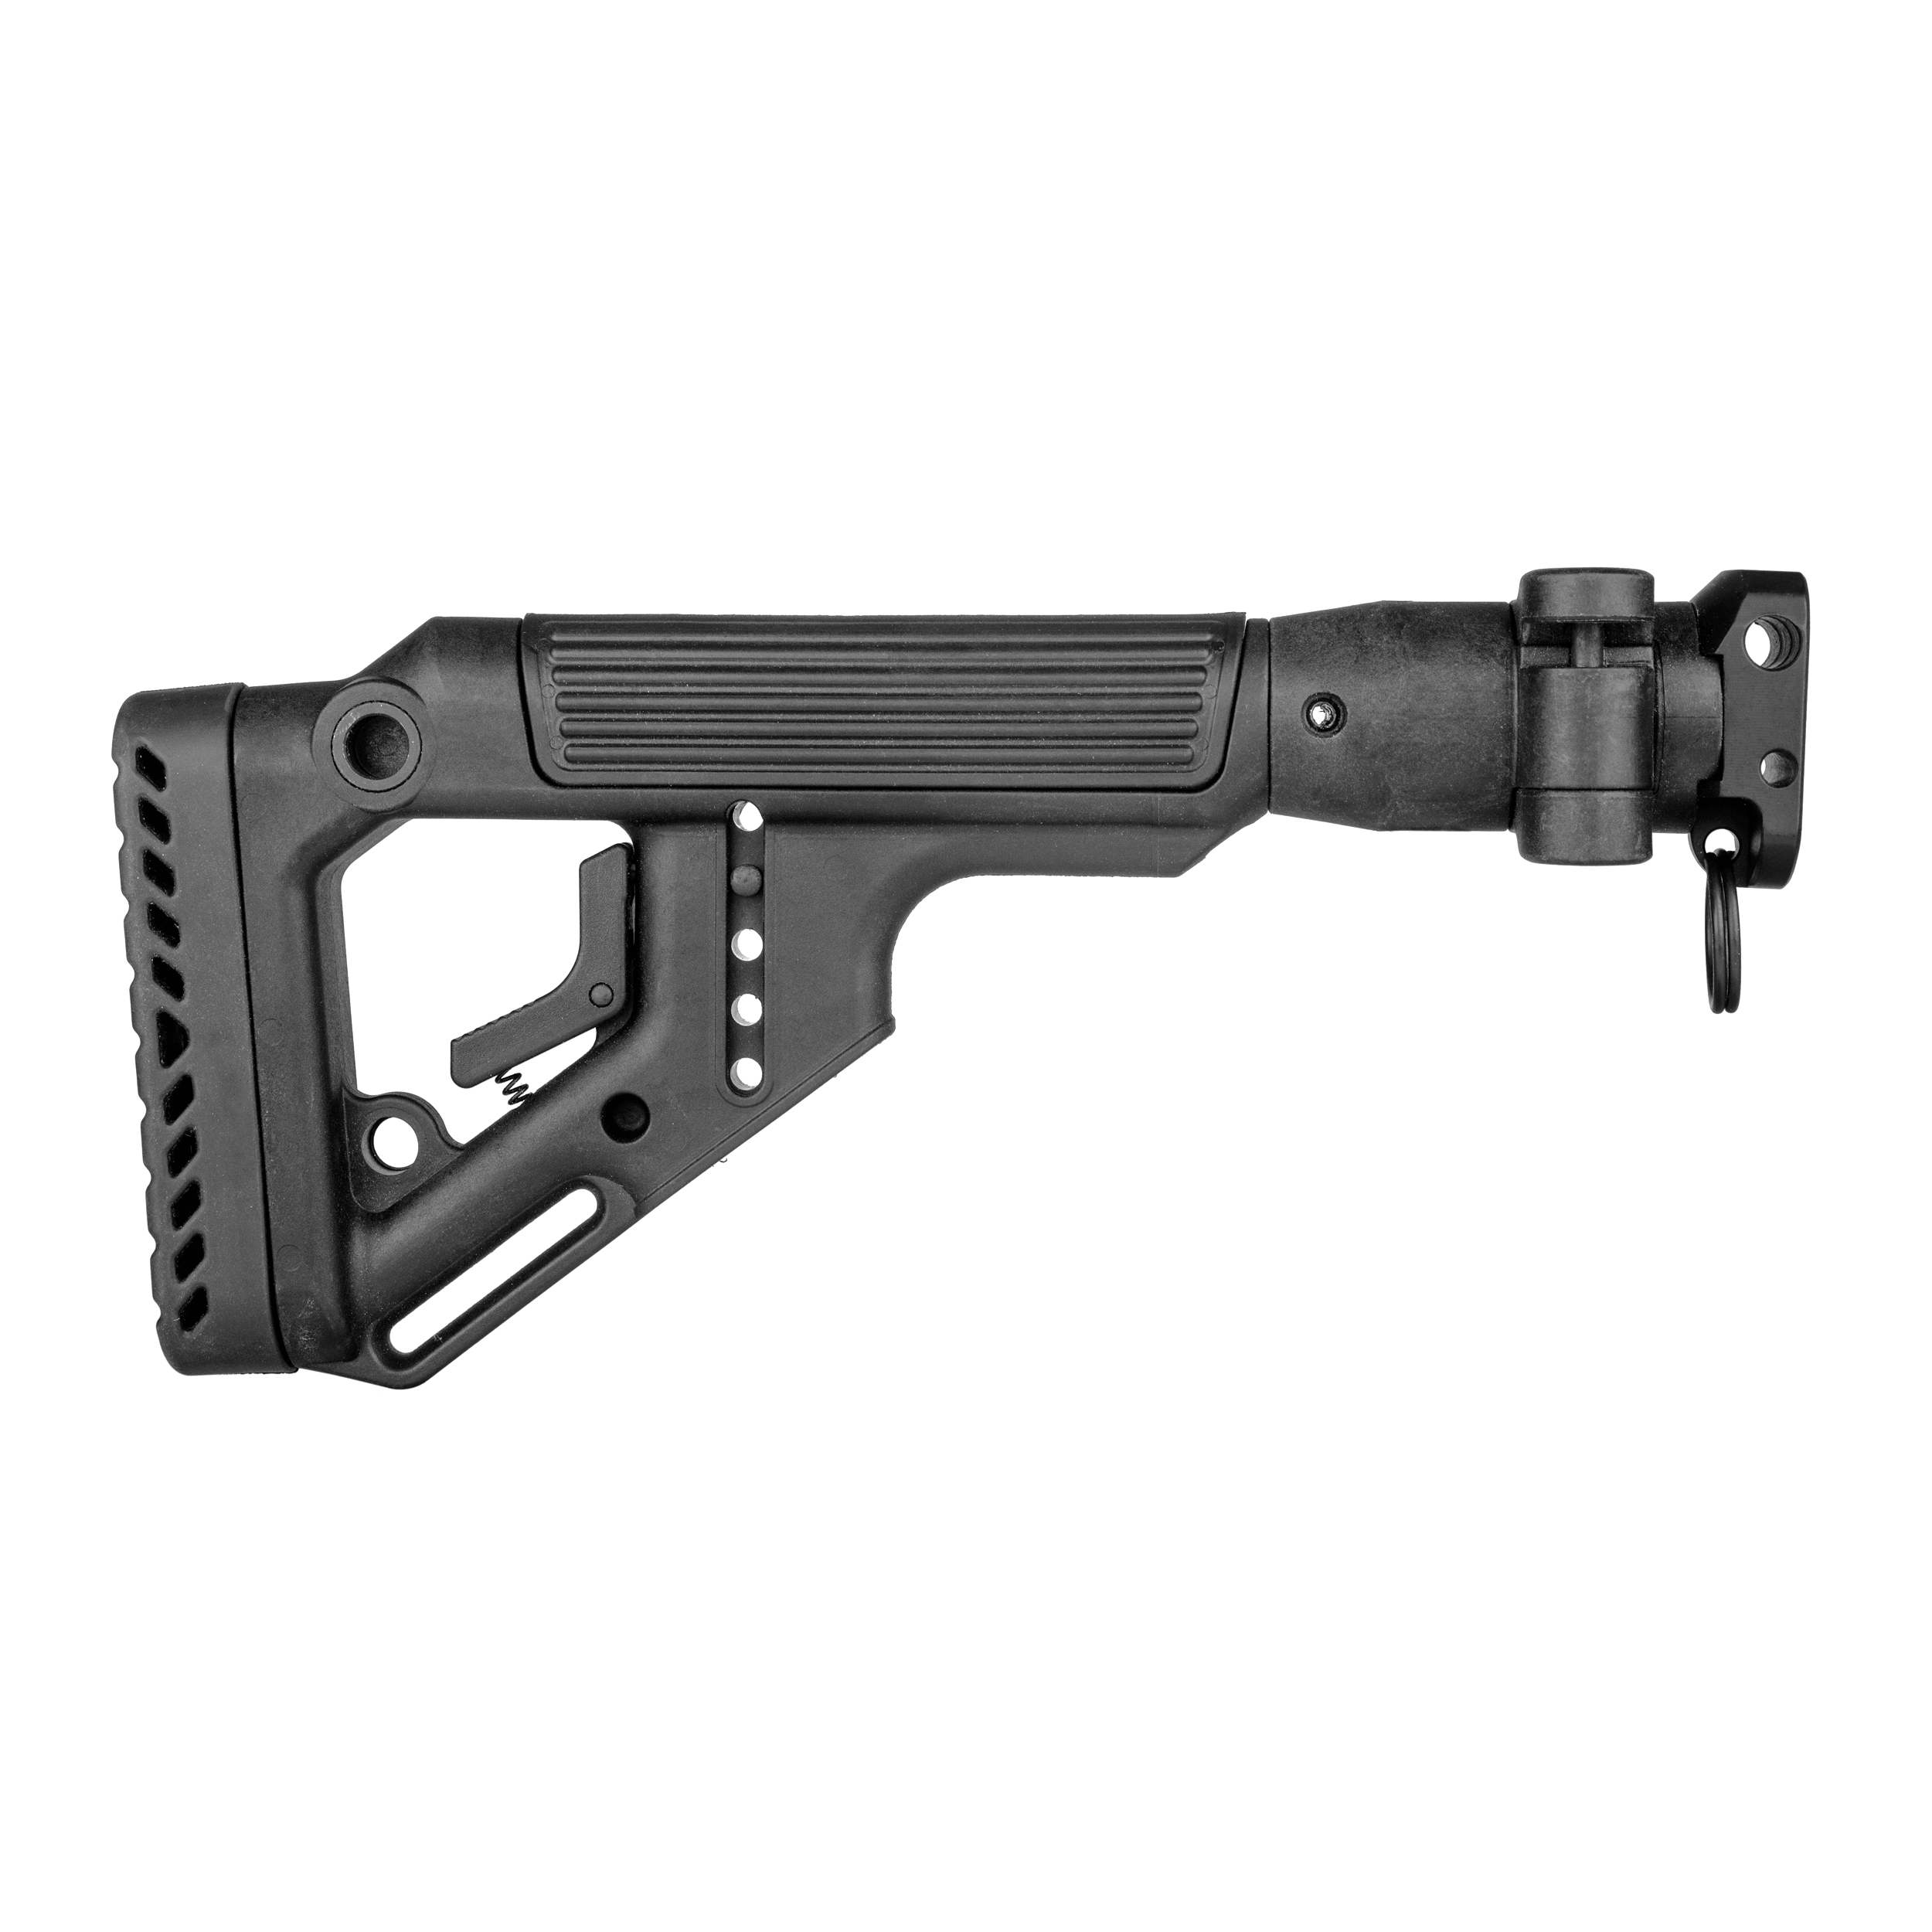 UAS Buttstock kit with built in adjustable CP for KPOS G2